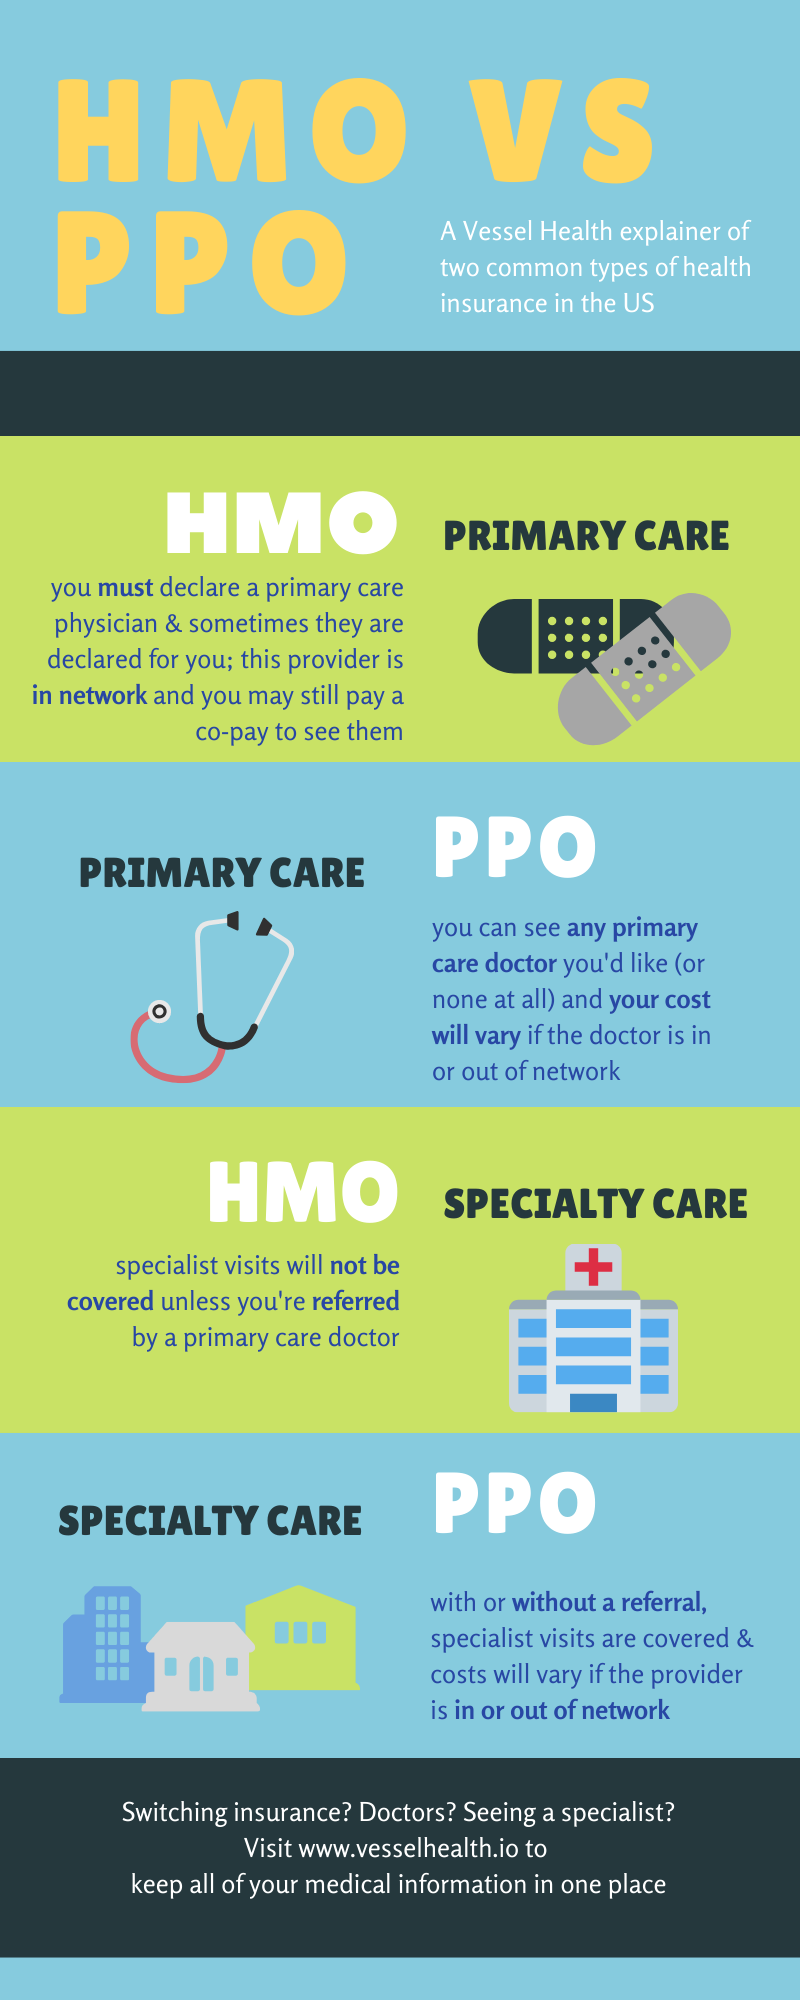 infographic explaining HMO vs PPO health insurance plans